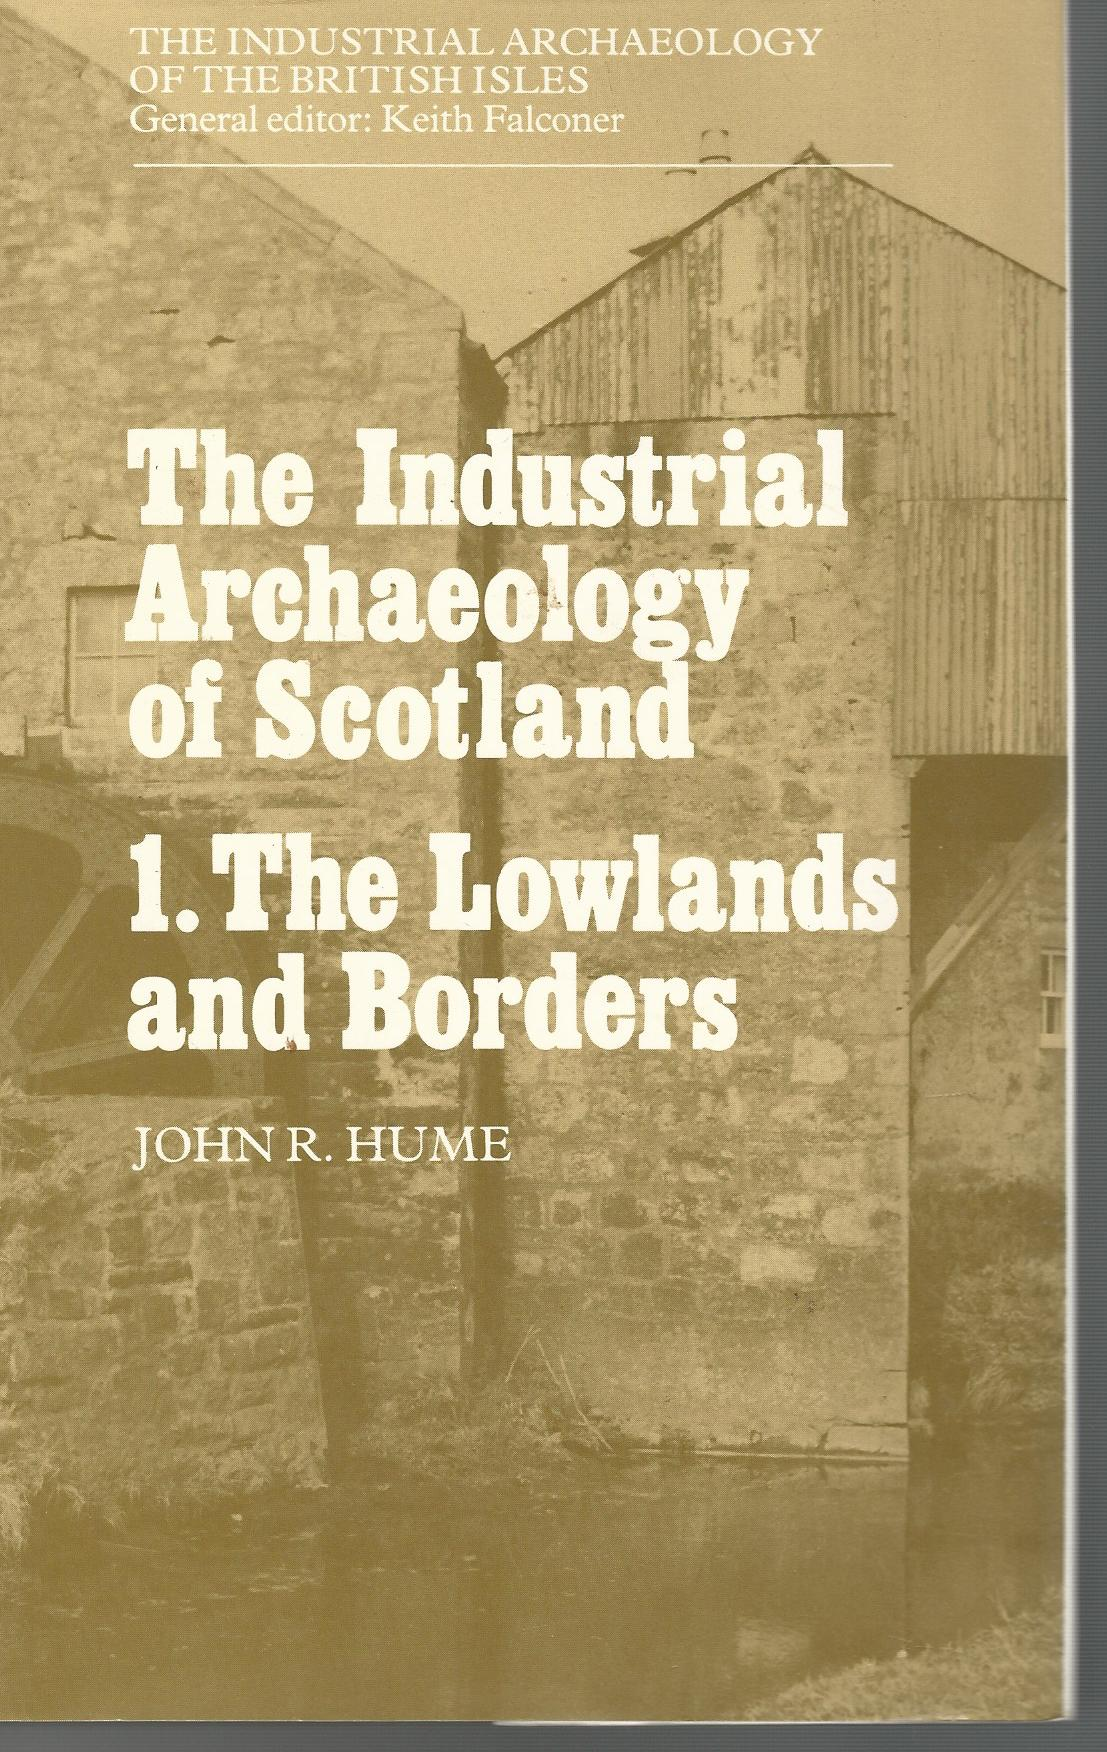 Image for The Industrial Archaeology of Scotland Volume 1: The Lowlands and Borders & Volume 2: The Highlands & Islands